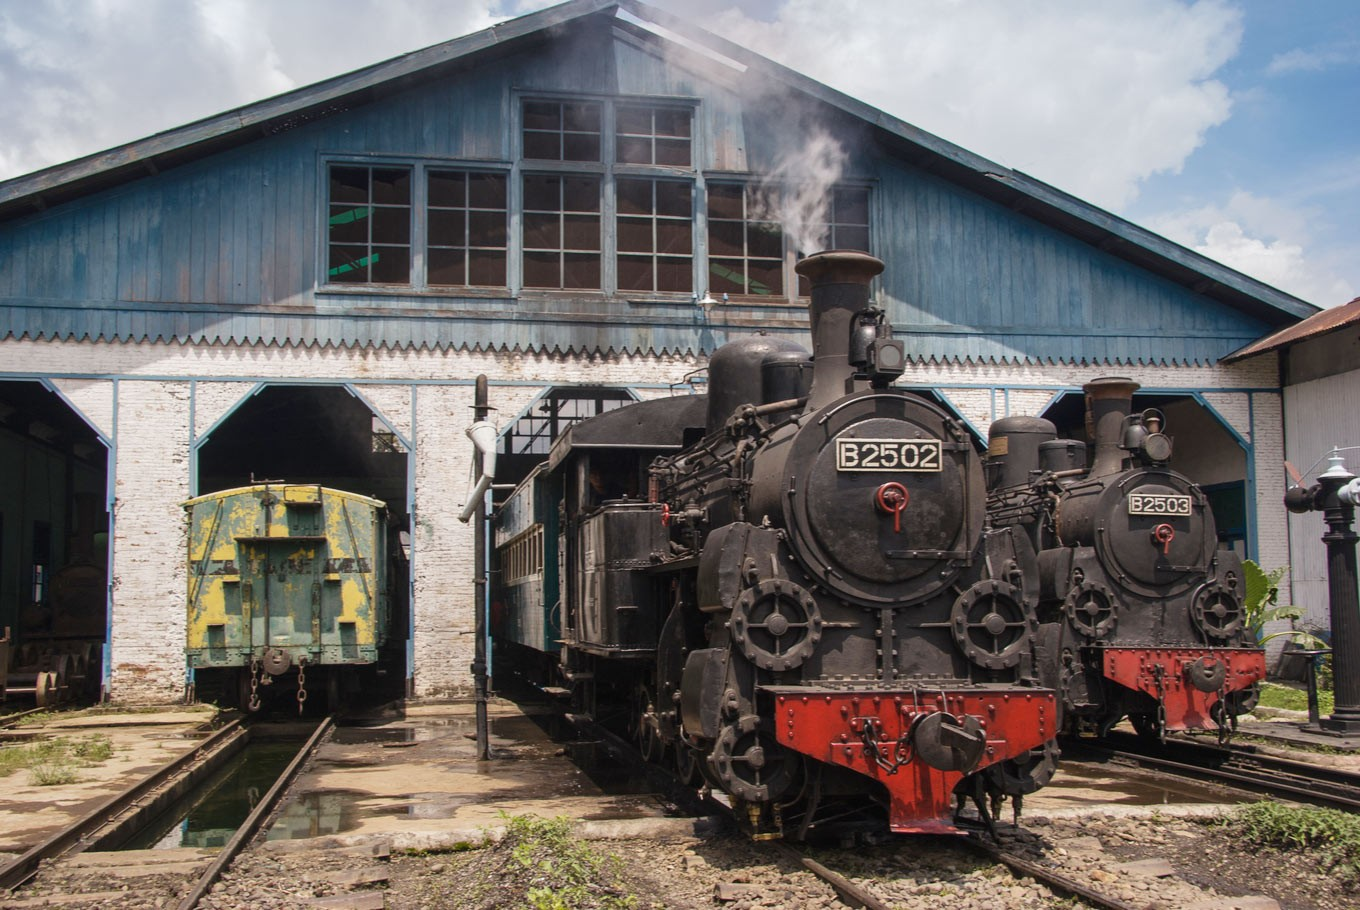 Dutch expertise contributes to promising future for heritage railways